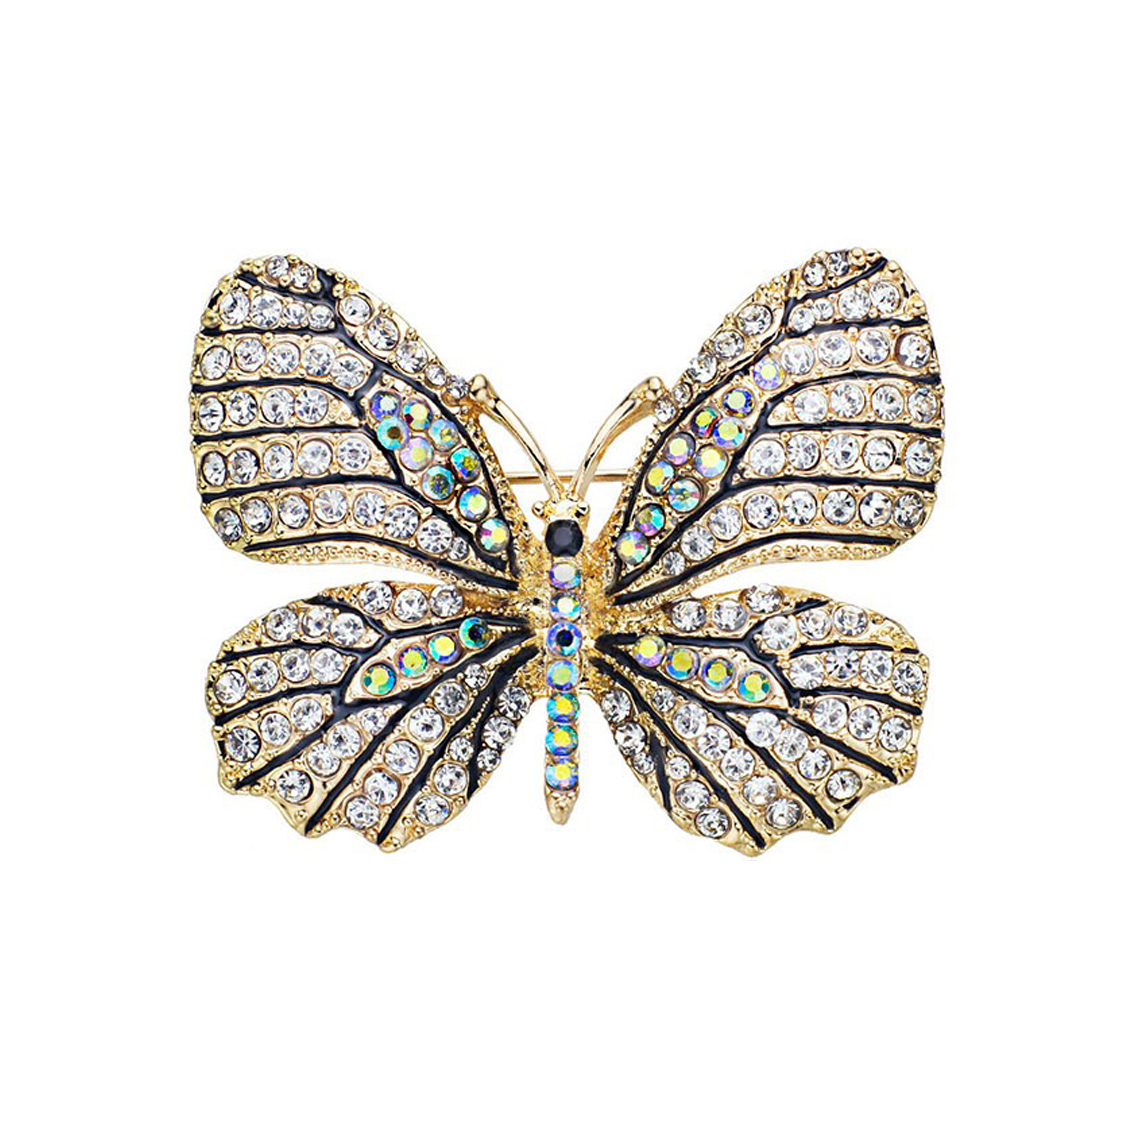 Studded Butterfly Brooch